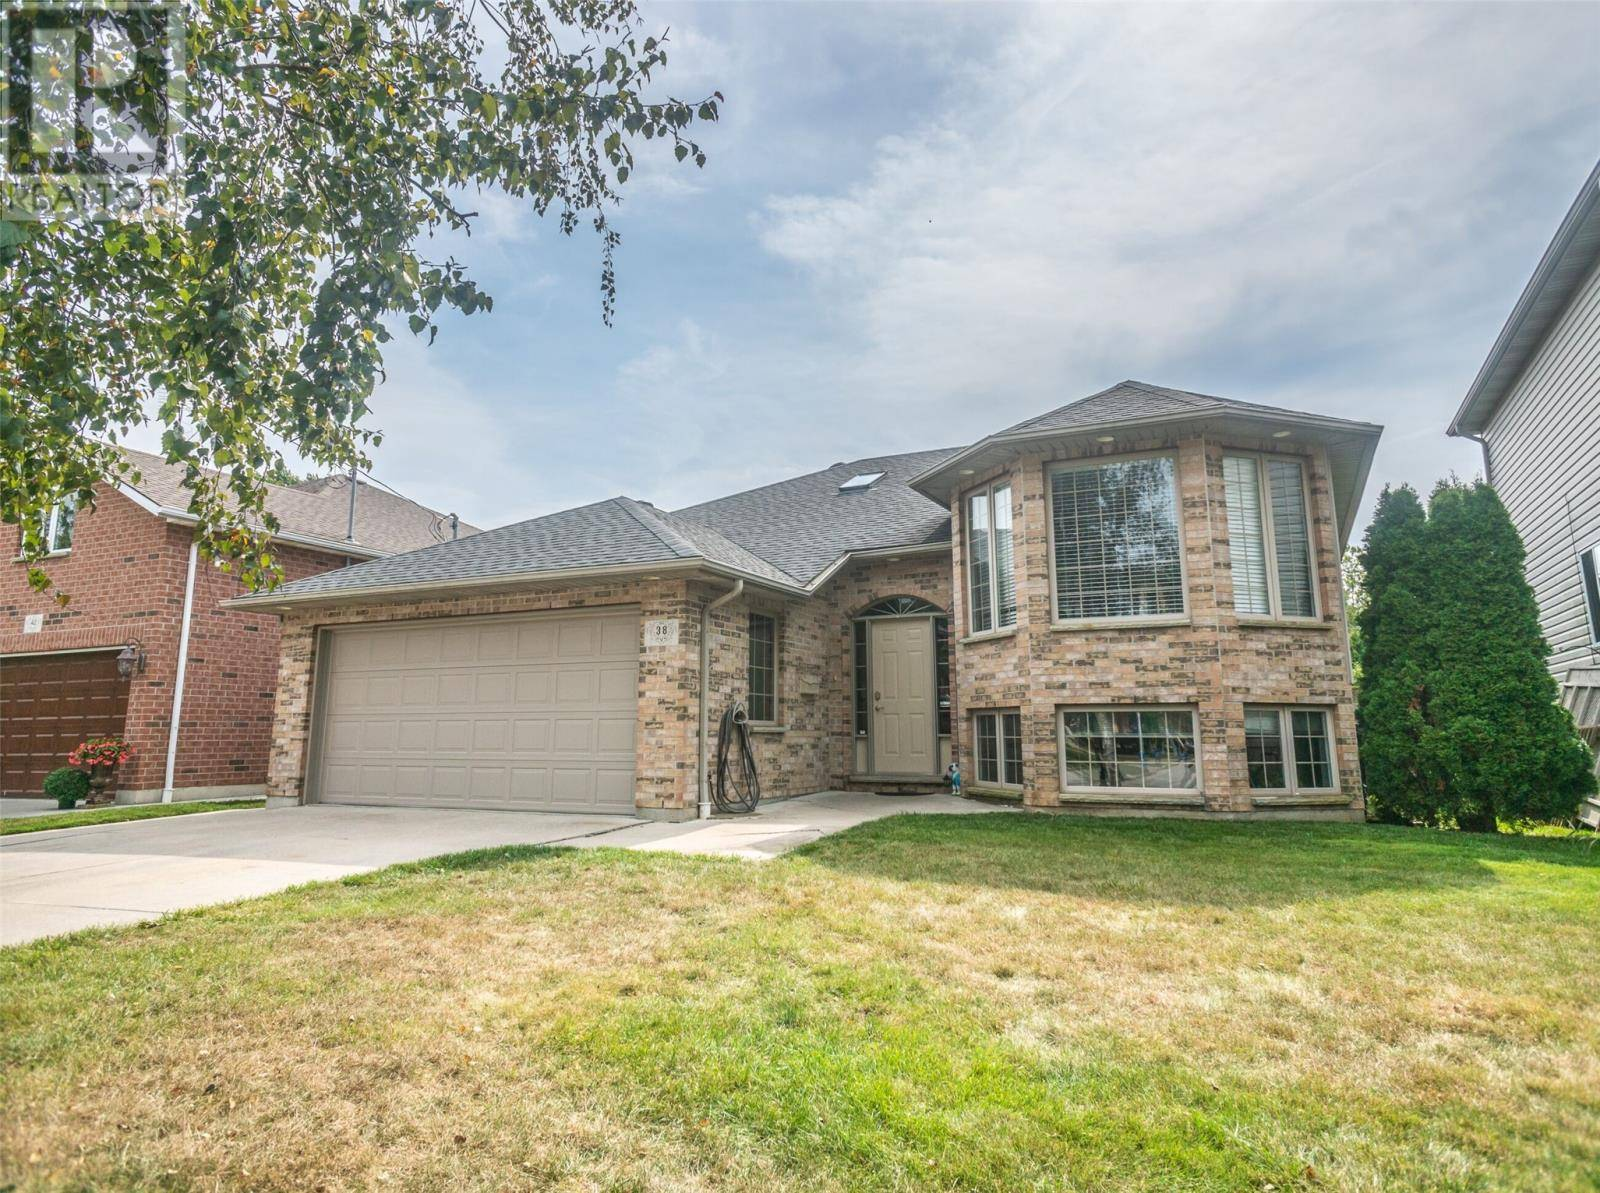 House for sale at 38 Queensway Dr Chatham Ontario - MLS: 20000303